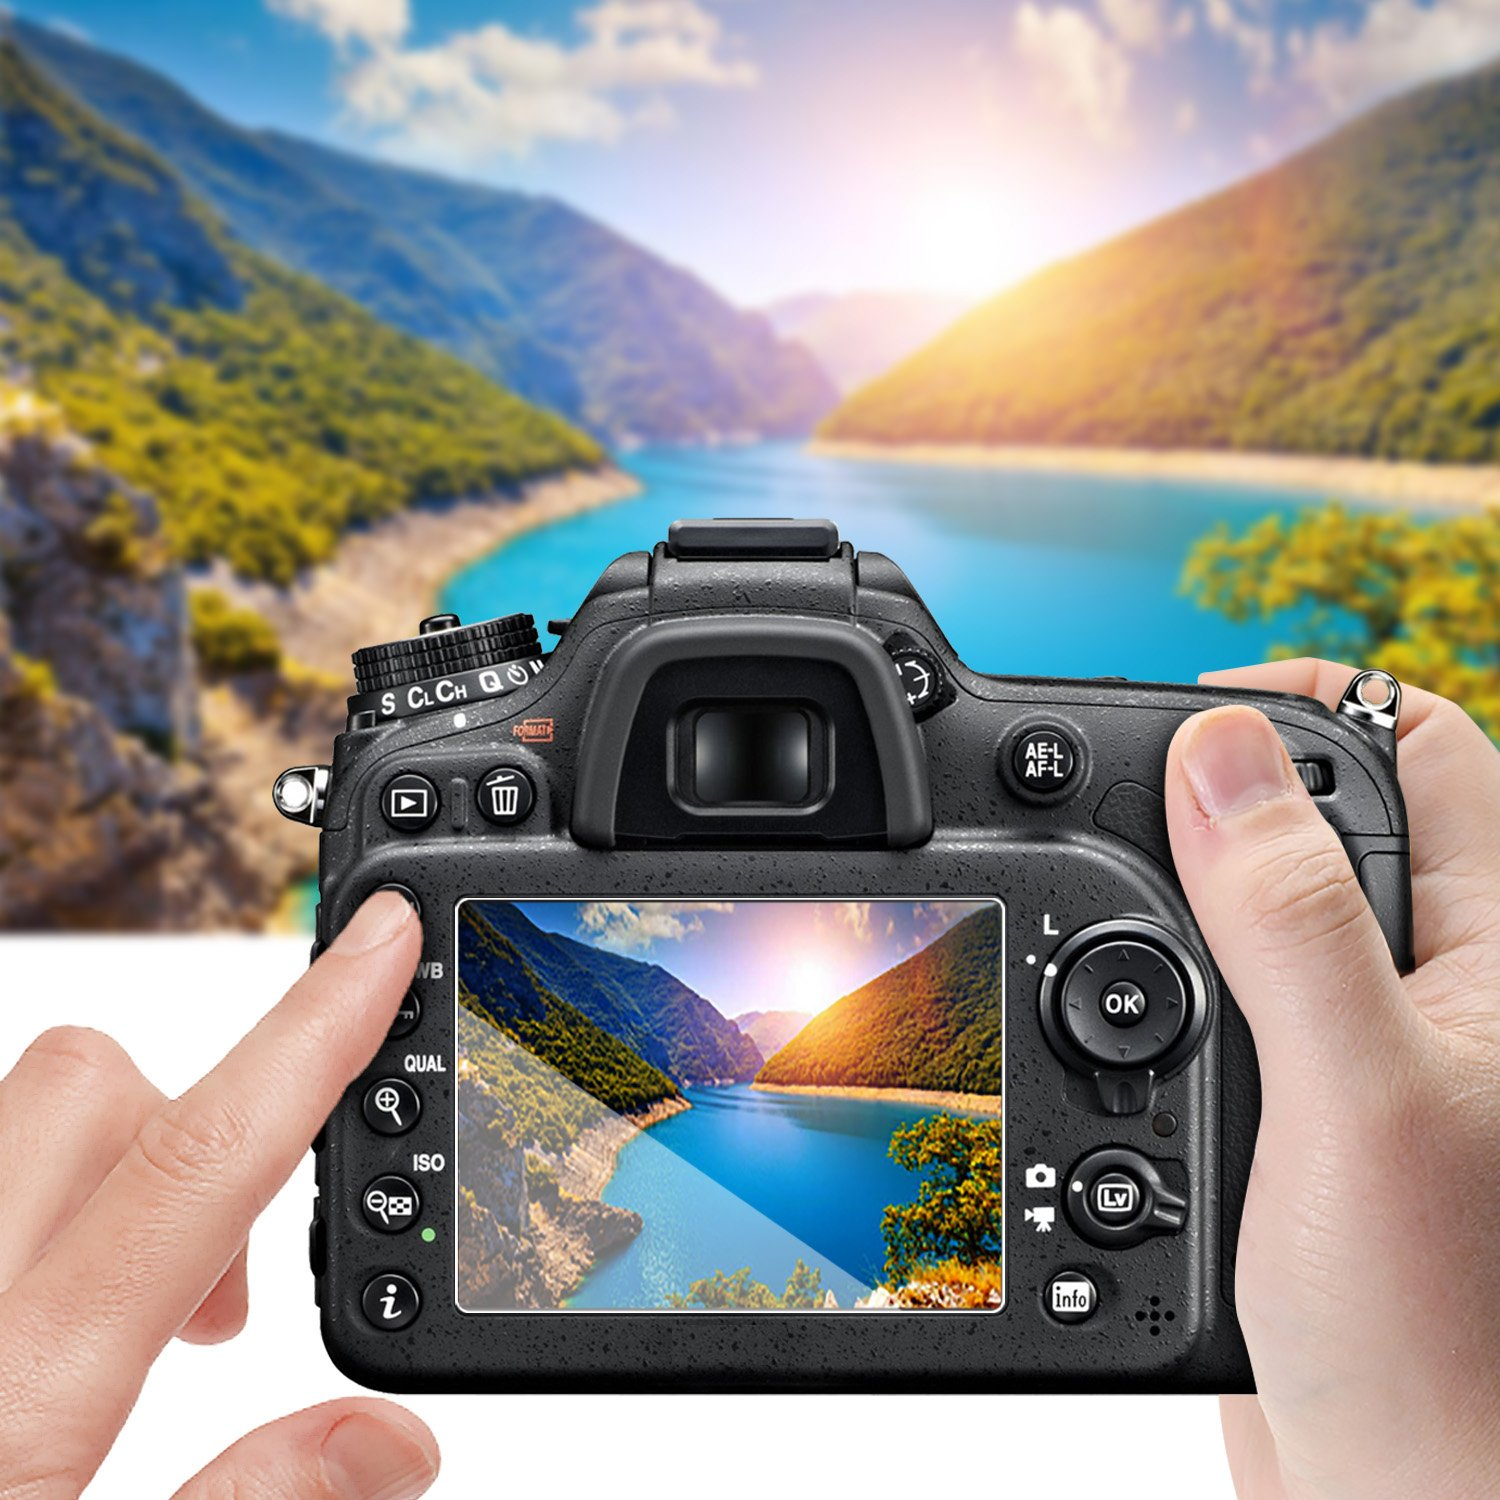 AKWOX 0.3mm 2.5D High Definition 9H Optical LCD Premium Glass Protective Cover 3-Pack Tempered Glass Screen Protector for Canon EOS 5D Mark IV 5D4 5DIV 5DS 5DS R DSLR Camera